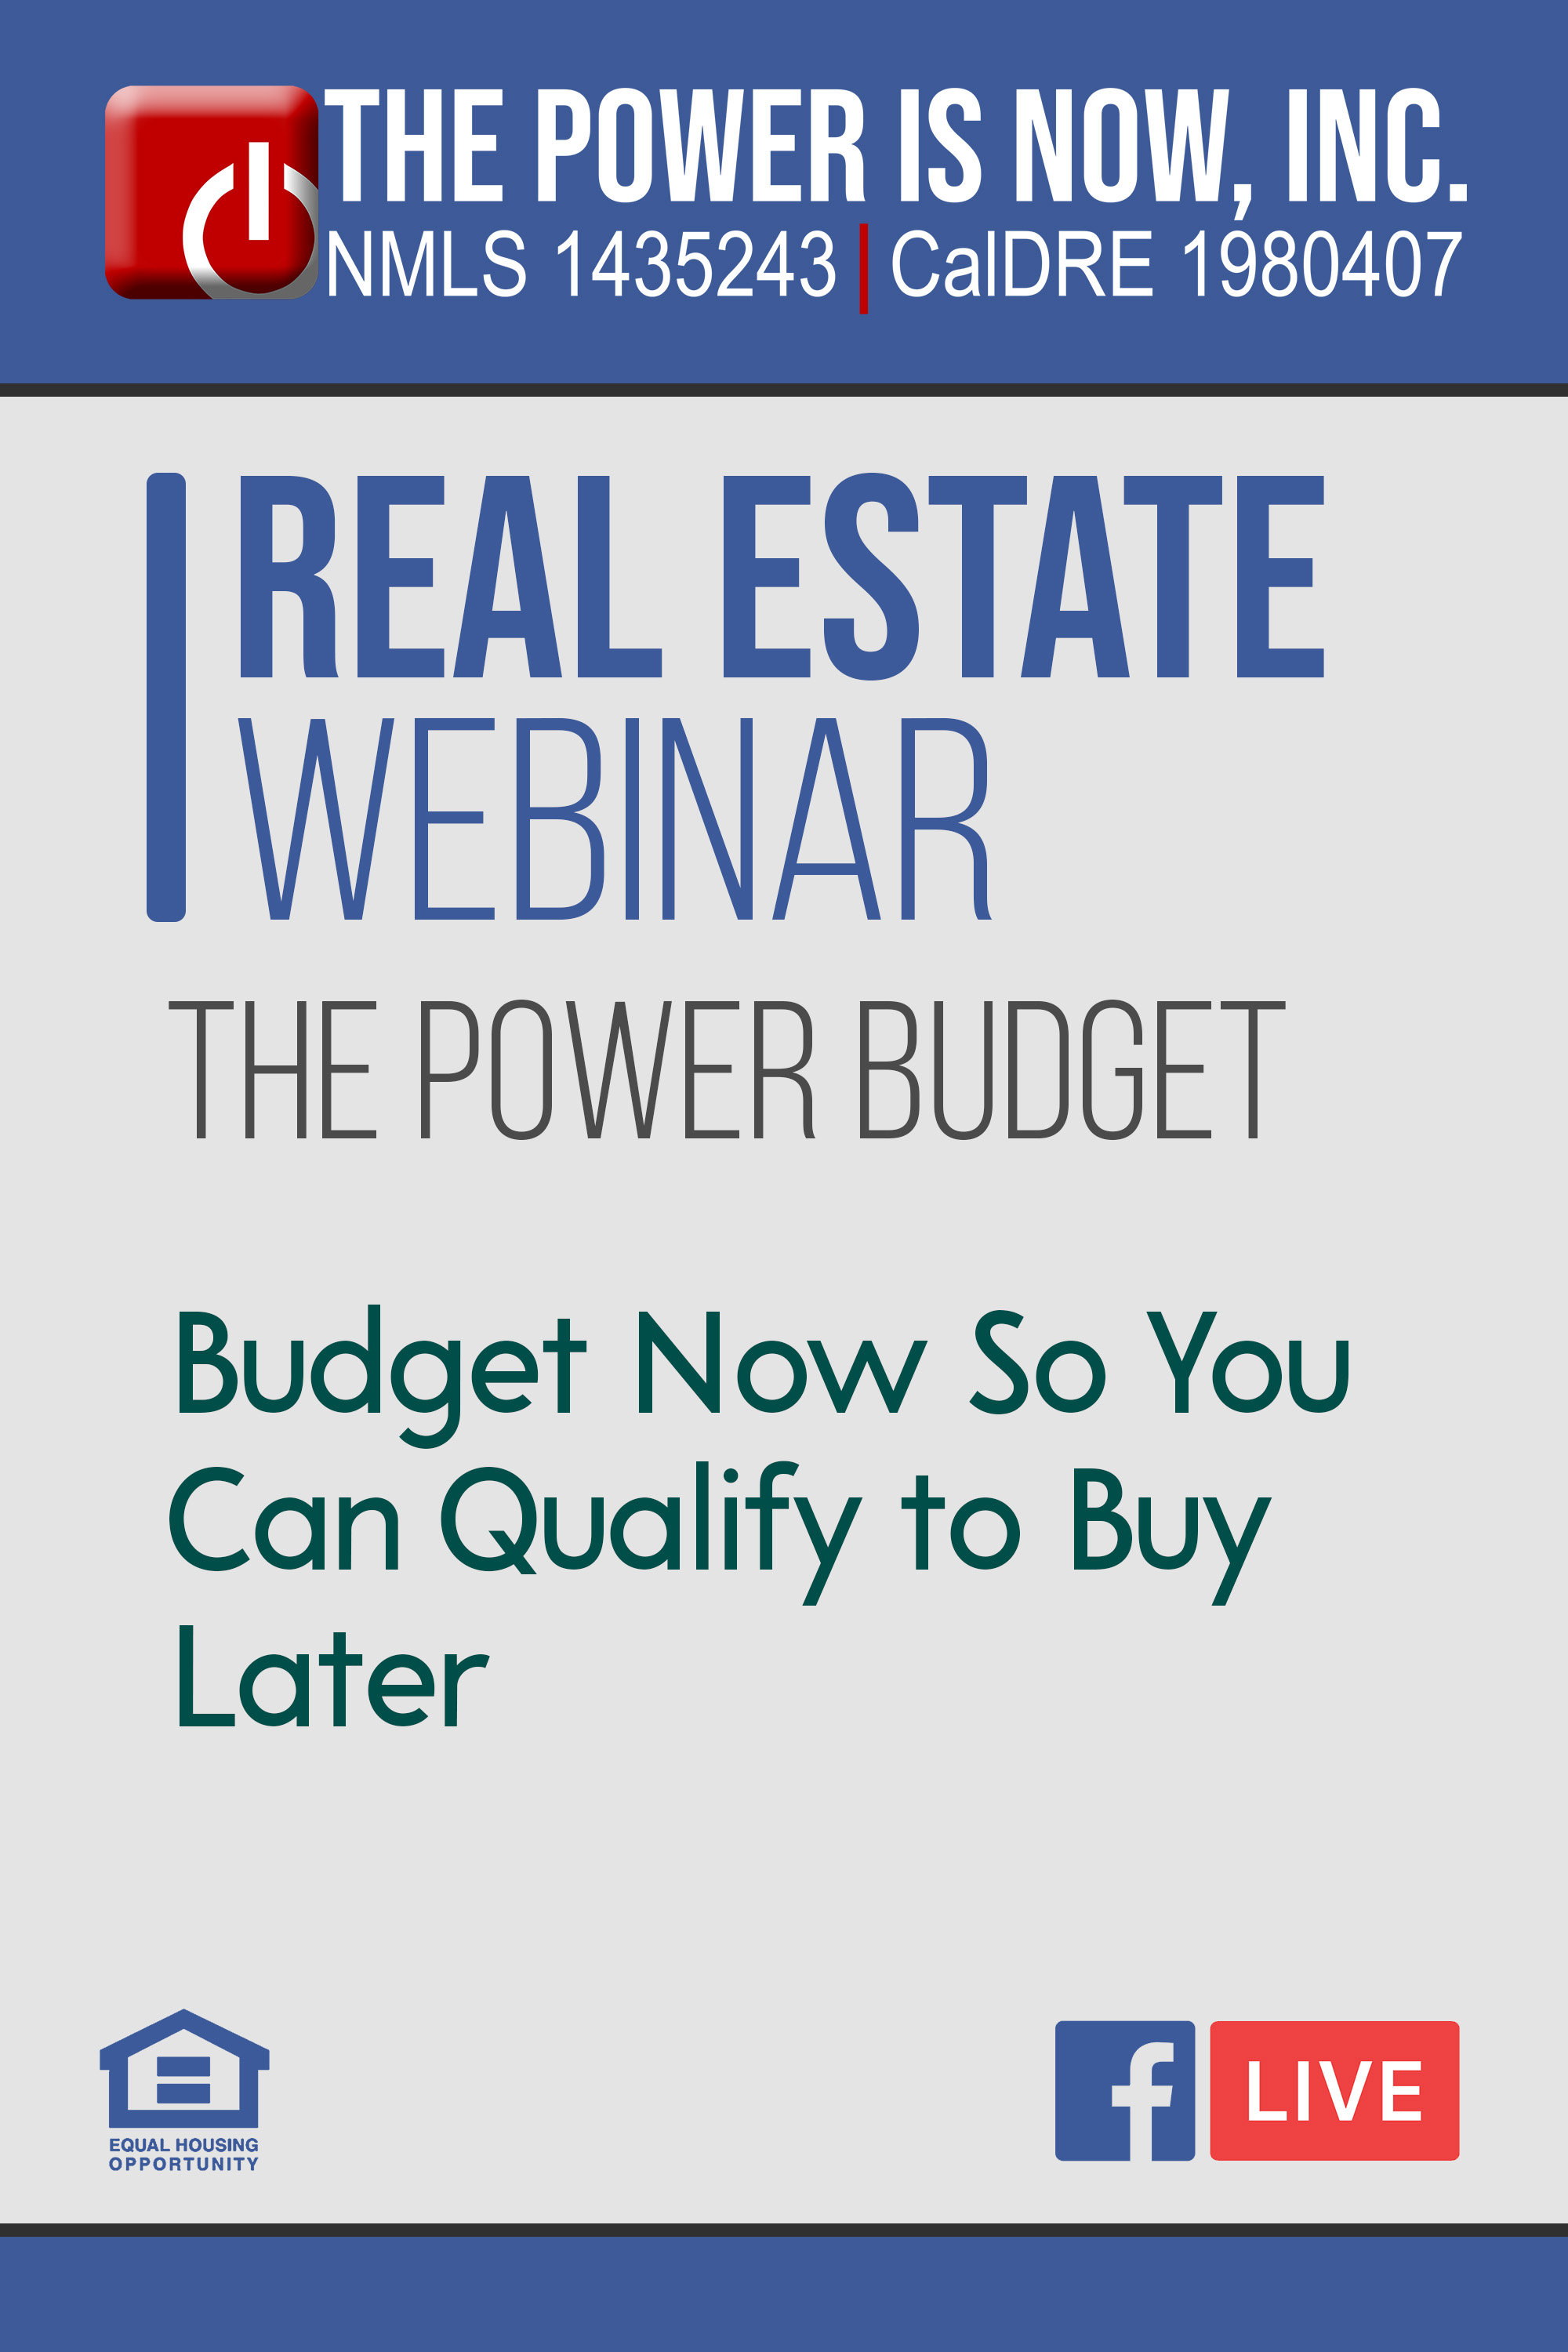 The Power Budget – Budget Now So You Can Qualify to Buy Later